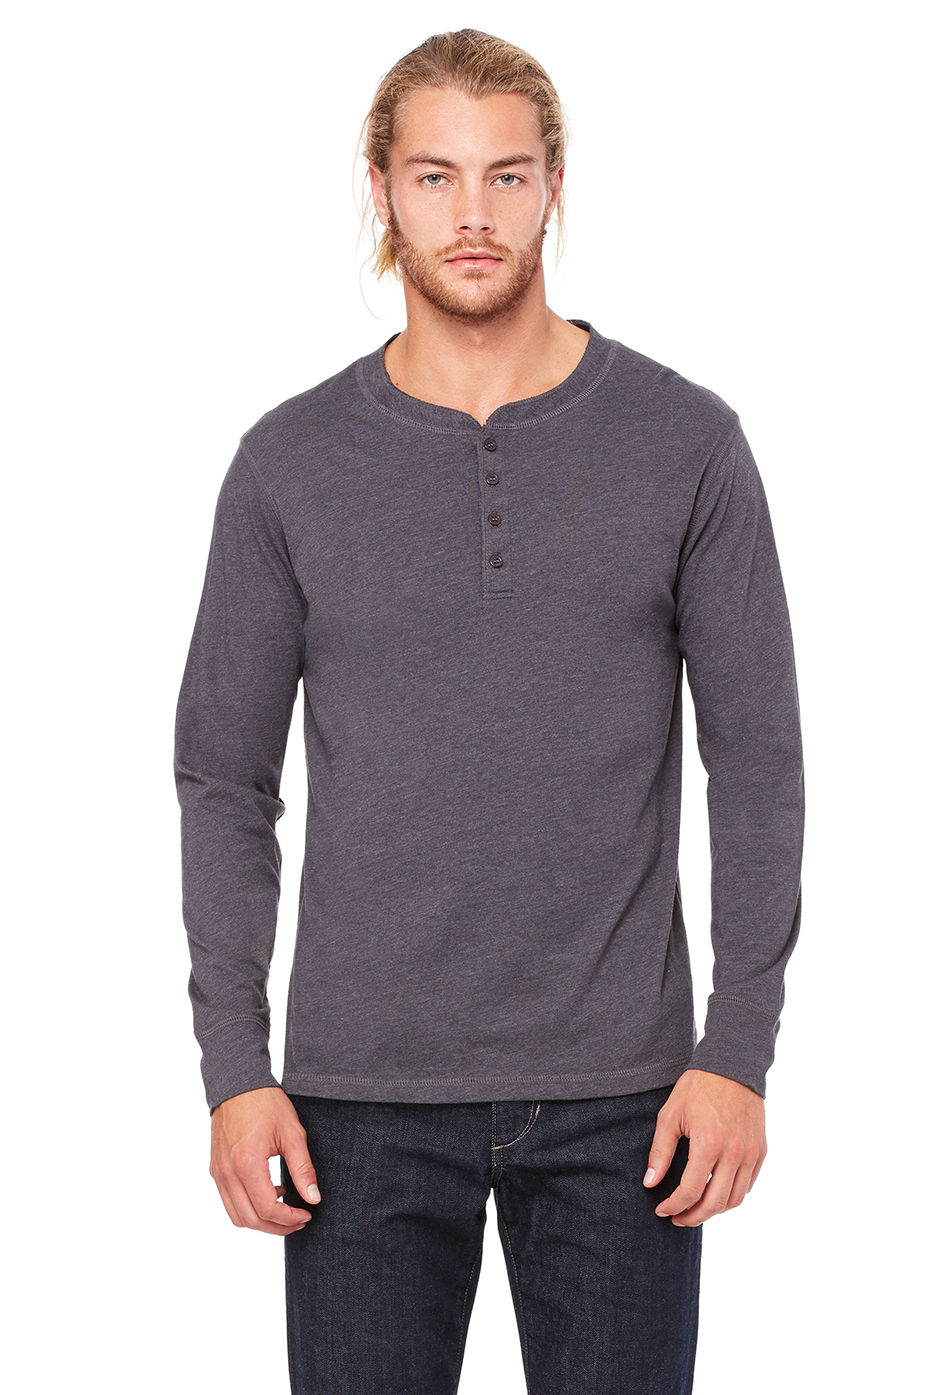 Henleys make you look approachable but mysterious. They make you look like you could take a woman out to dinner and then fix the car if it breaks down on the .